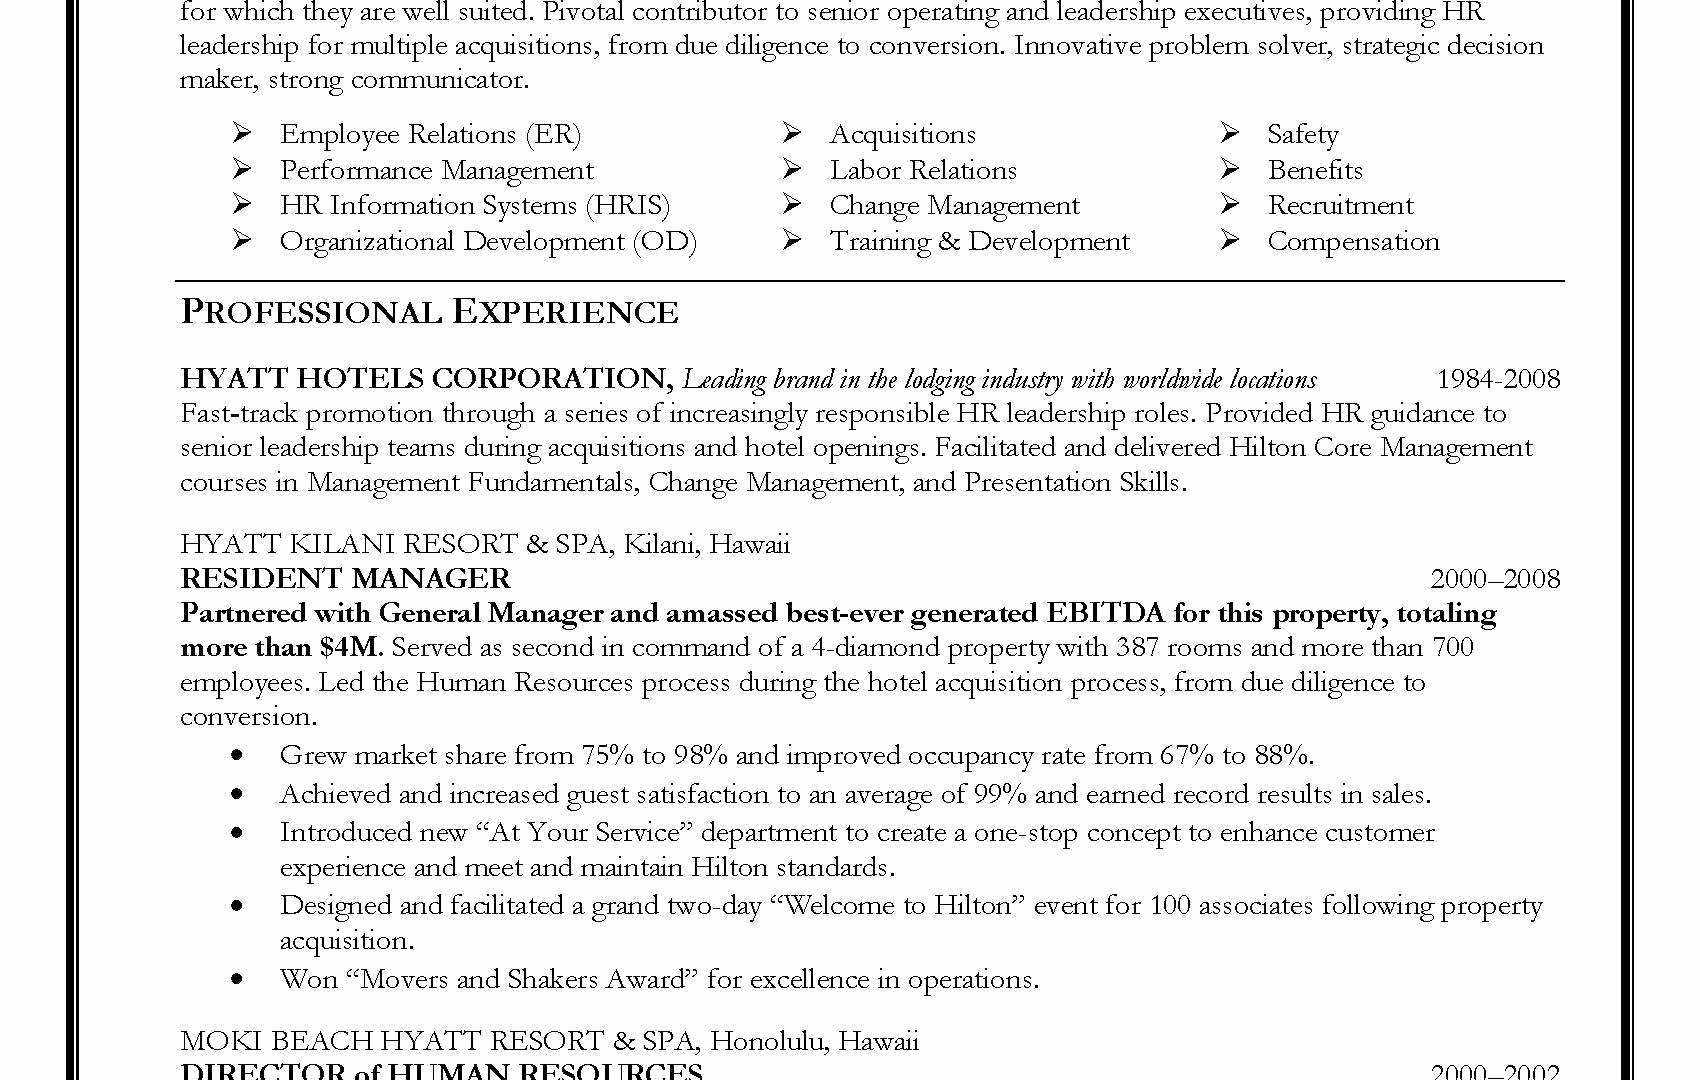 Human Resources Manager Resume - Human Resource Manager Resume Elegant Hr Resume Examples Manqal